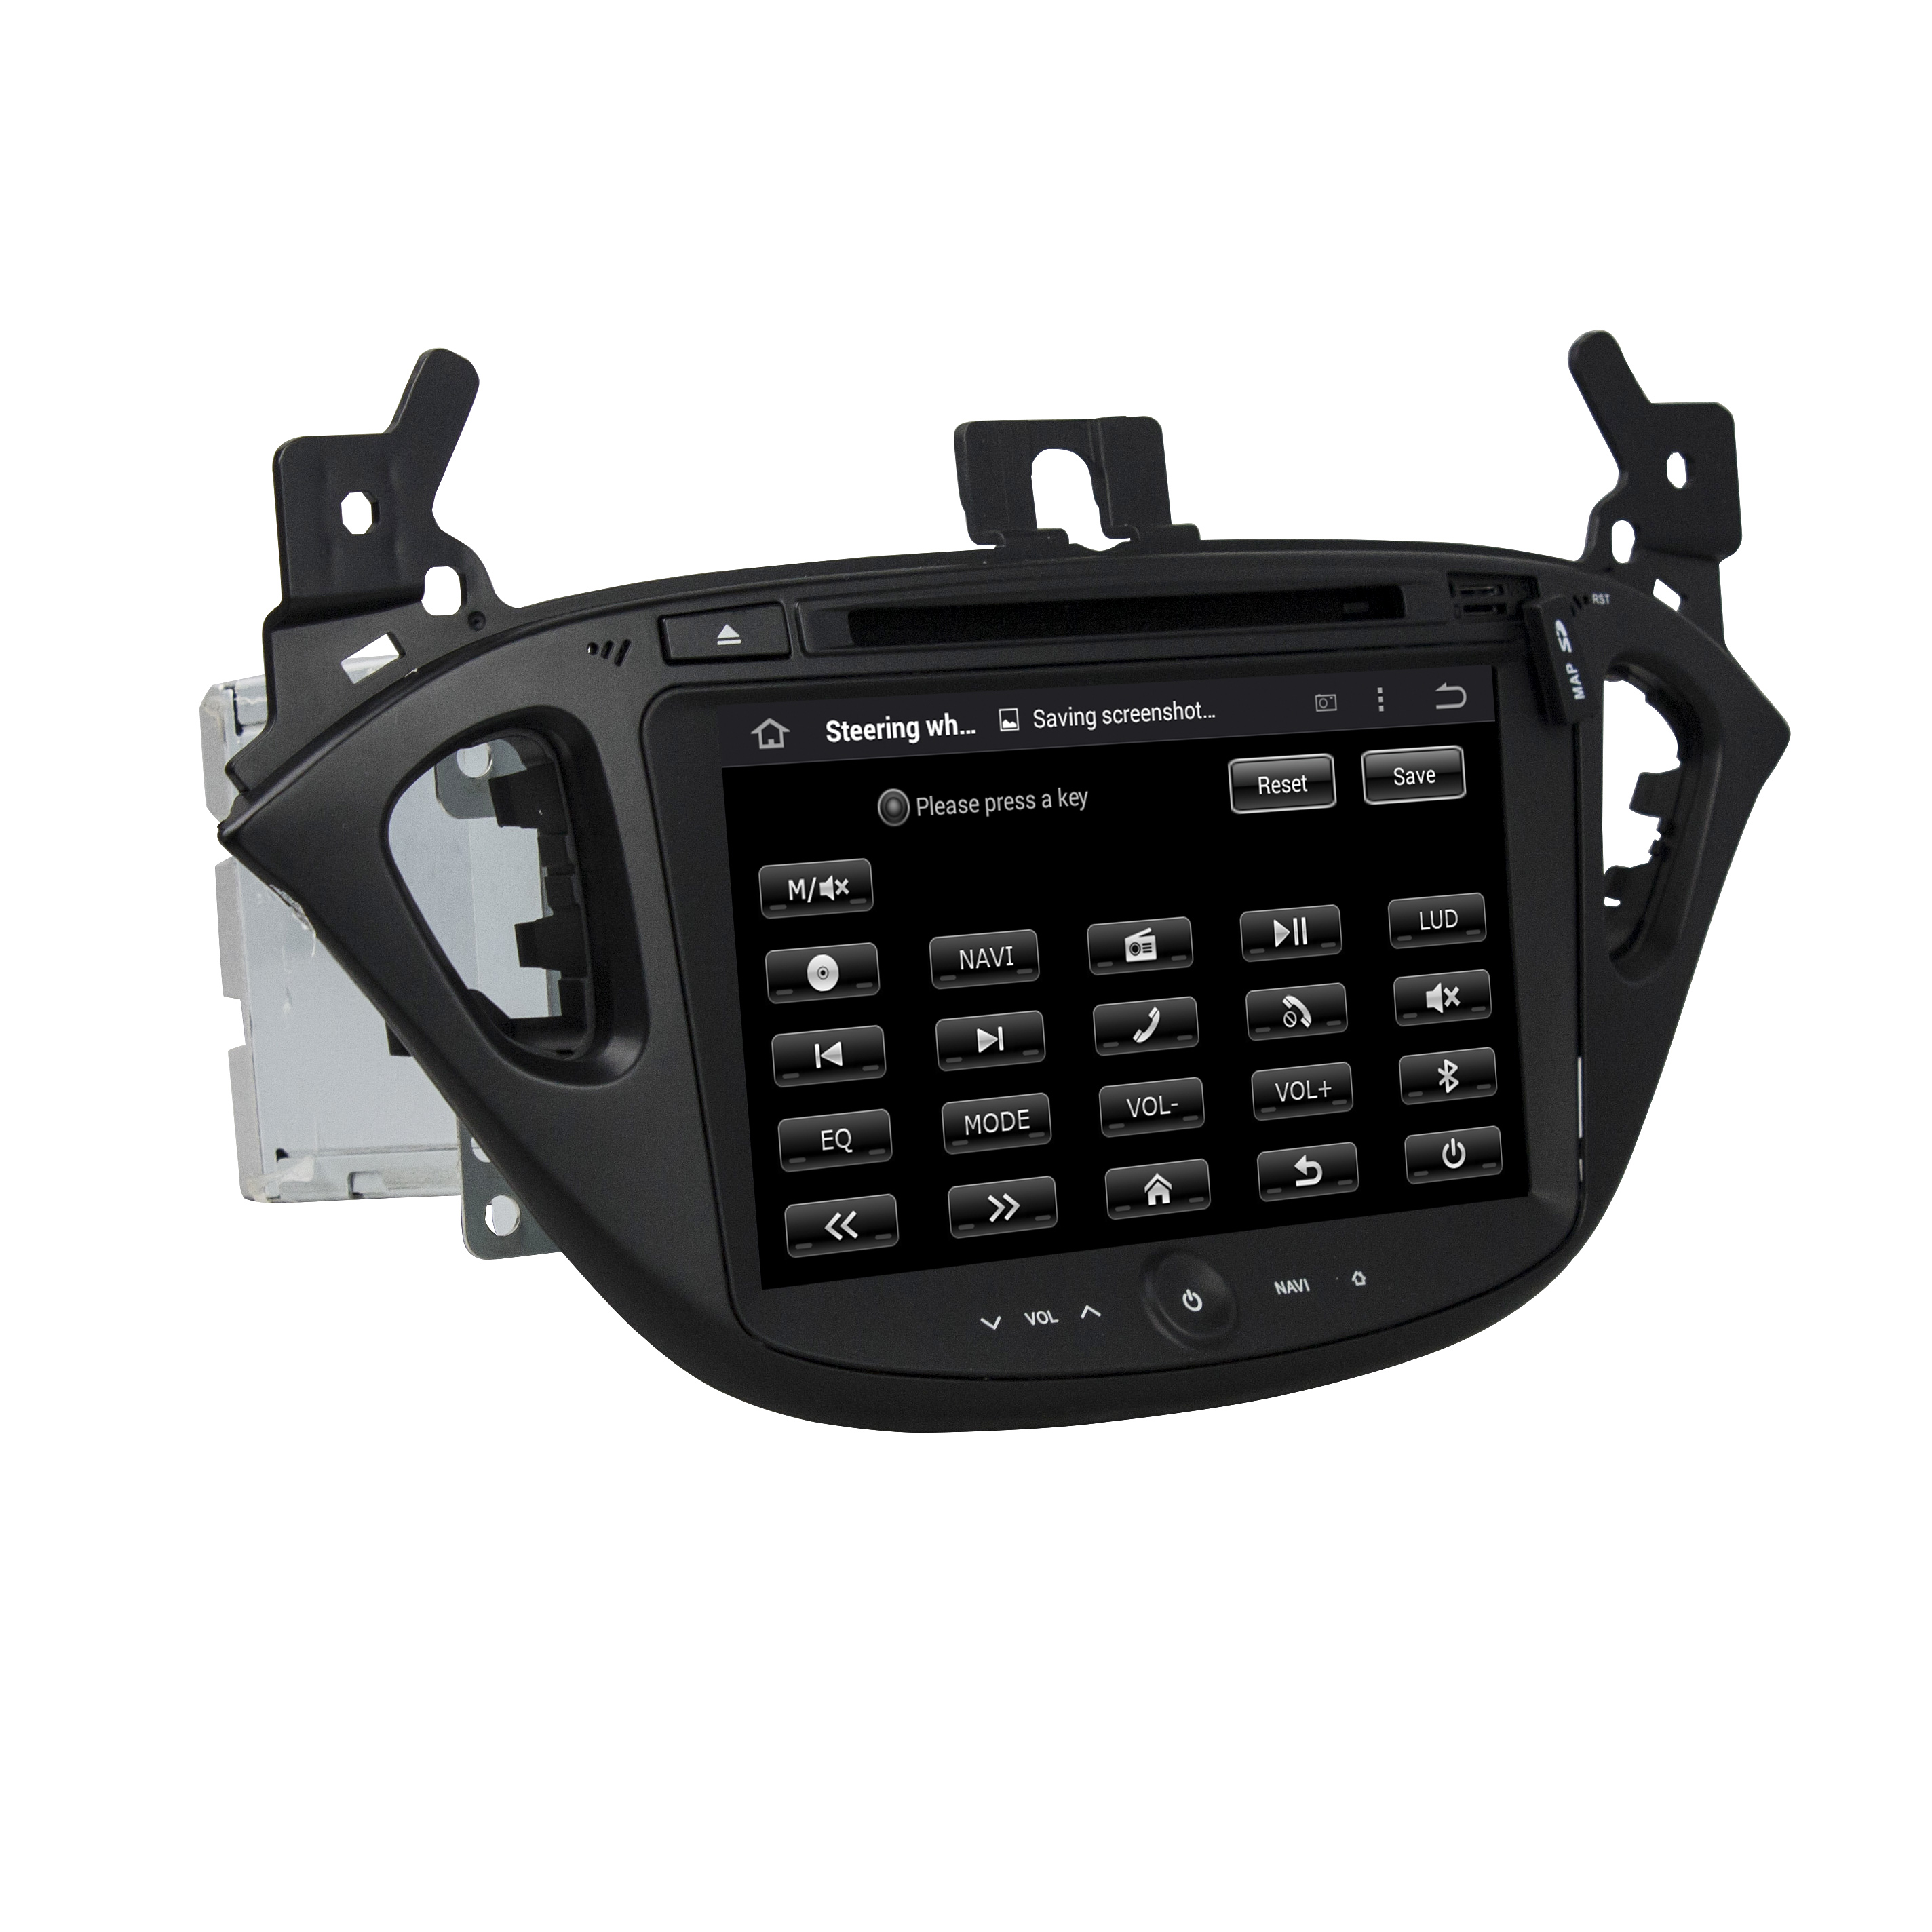 CORSA 2015-2016 dvd player for Opel cars